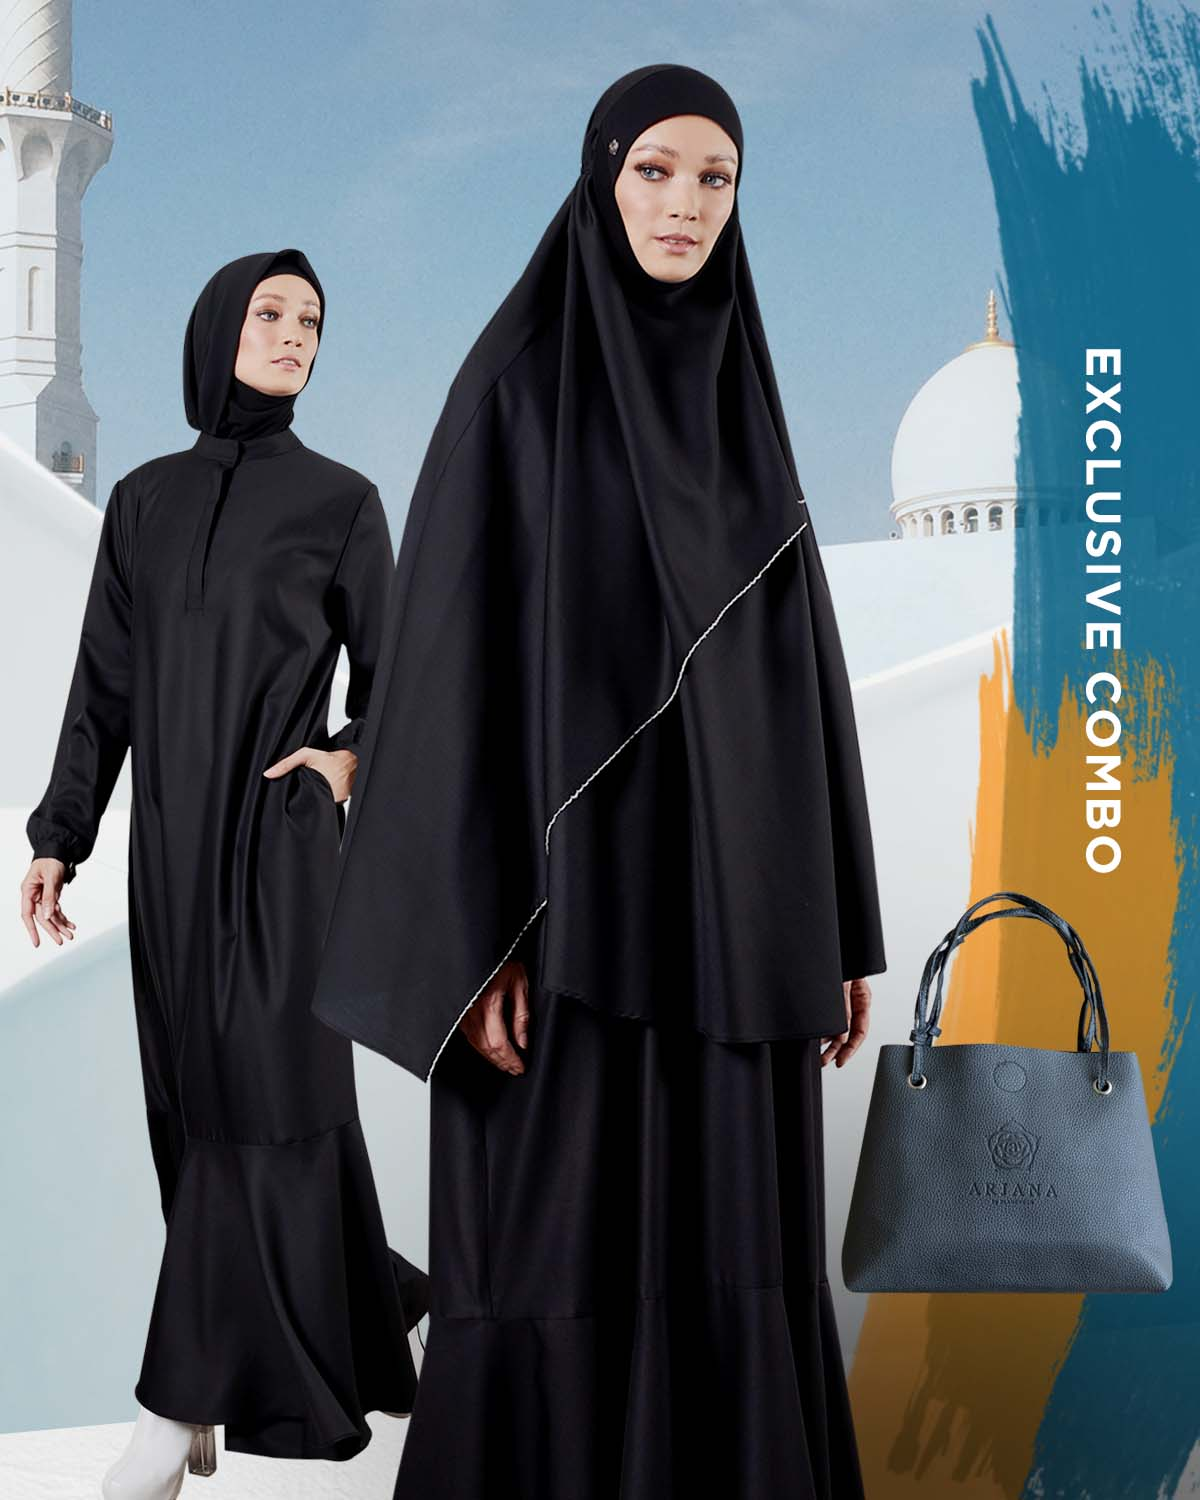 HAJJ 2019 Combo : ARJANA Iris Dress in Black with ARJANA Calla Mini Telekung in Black & FREE Telekung Bag